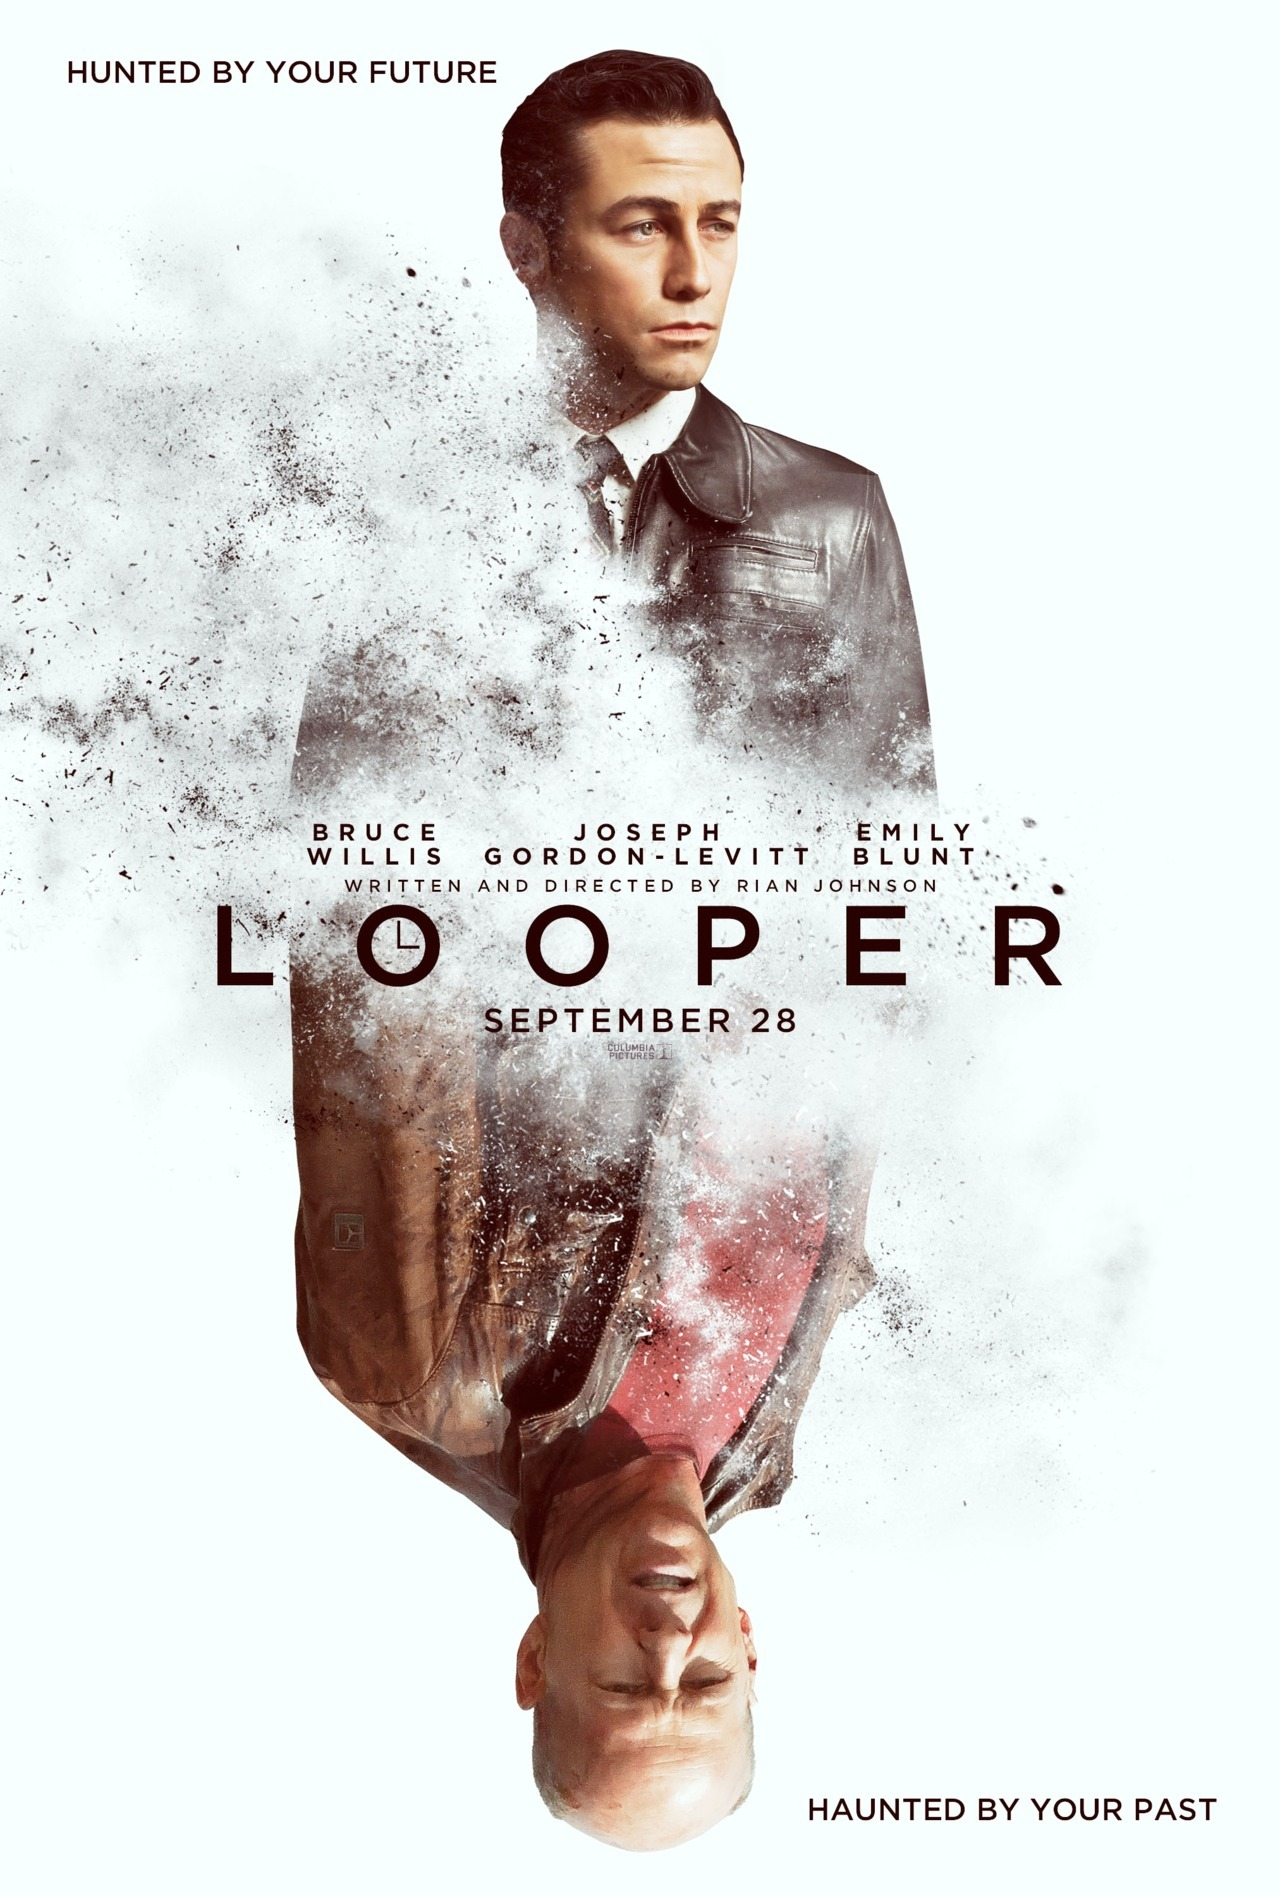 loopermovie:  Teaser poster (via our friends at /Film)  The more I see/hear that I don't want to see/hear, the more excited I am for this movie. What a cool poster.